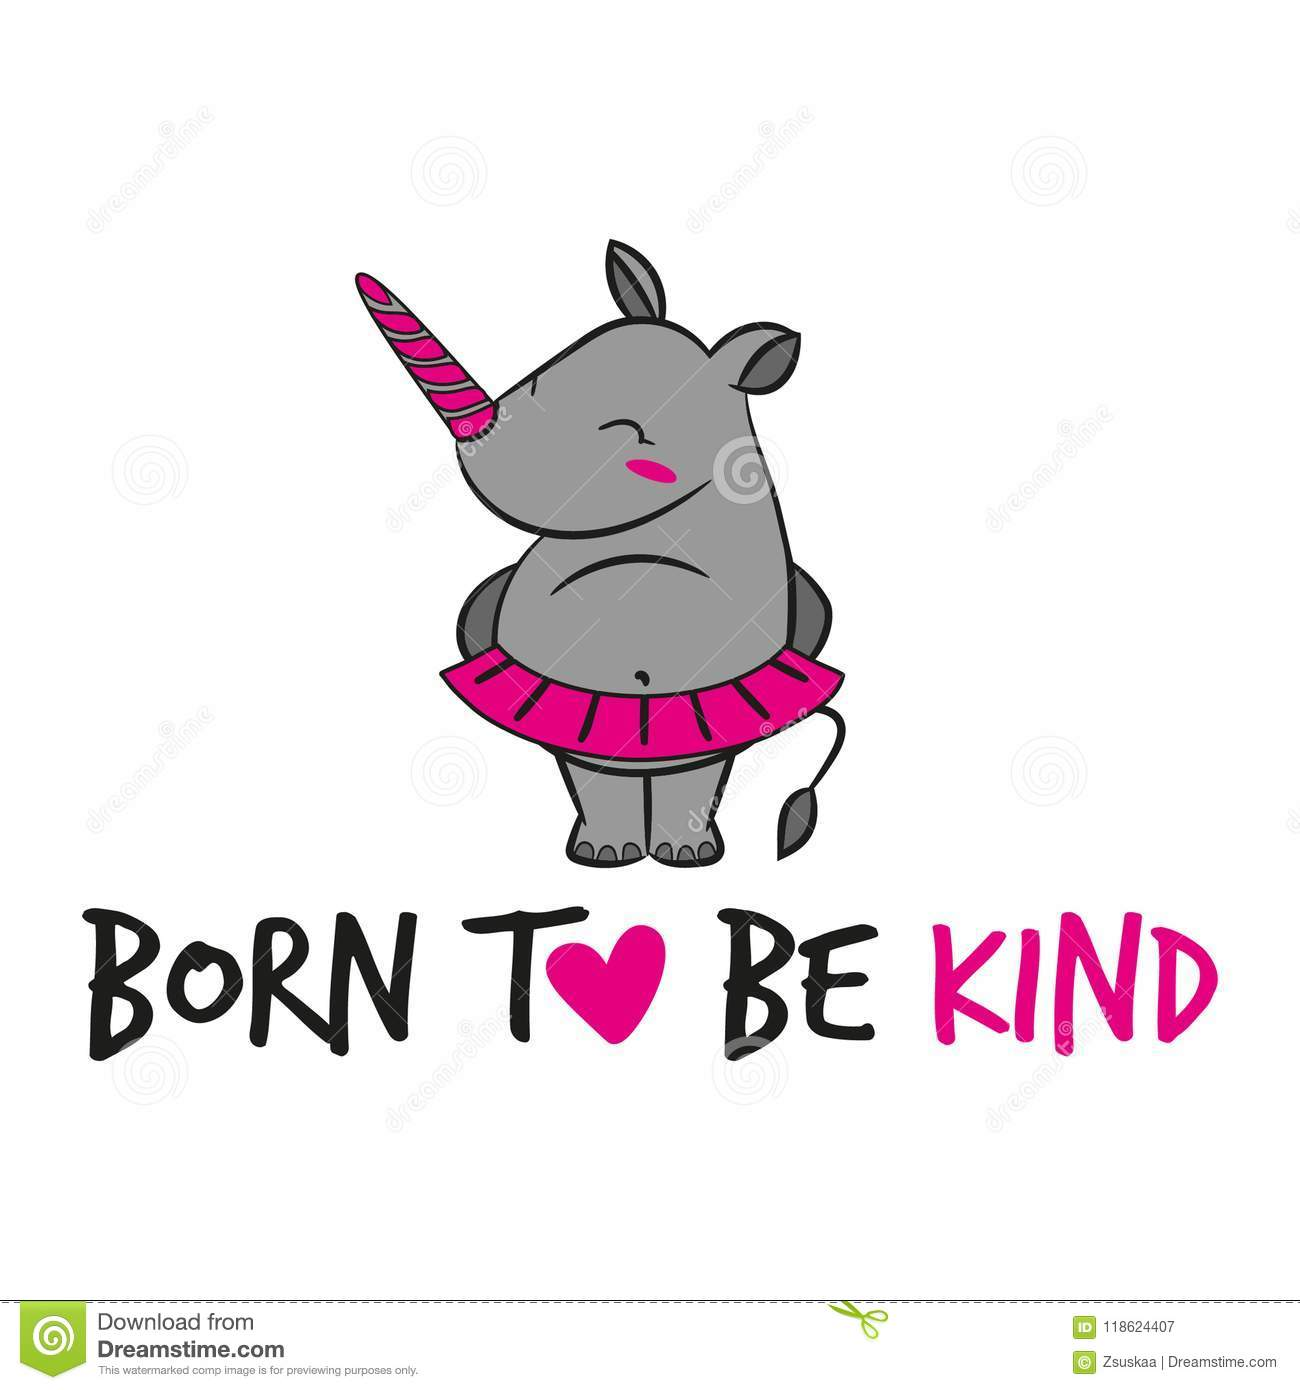 Born to be kind funny vector text stock vector illustration of download born to be kind funny vector text stock vector illustration of girl thecheapjerseys Gallery